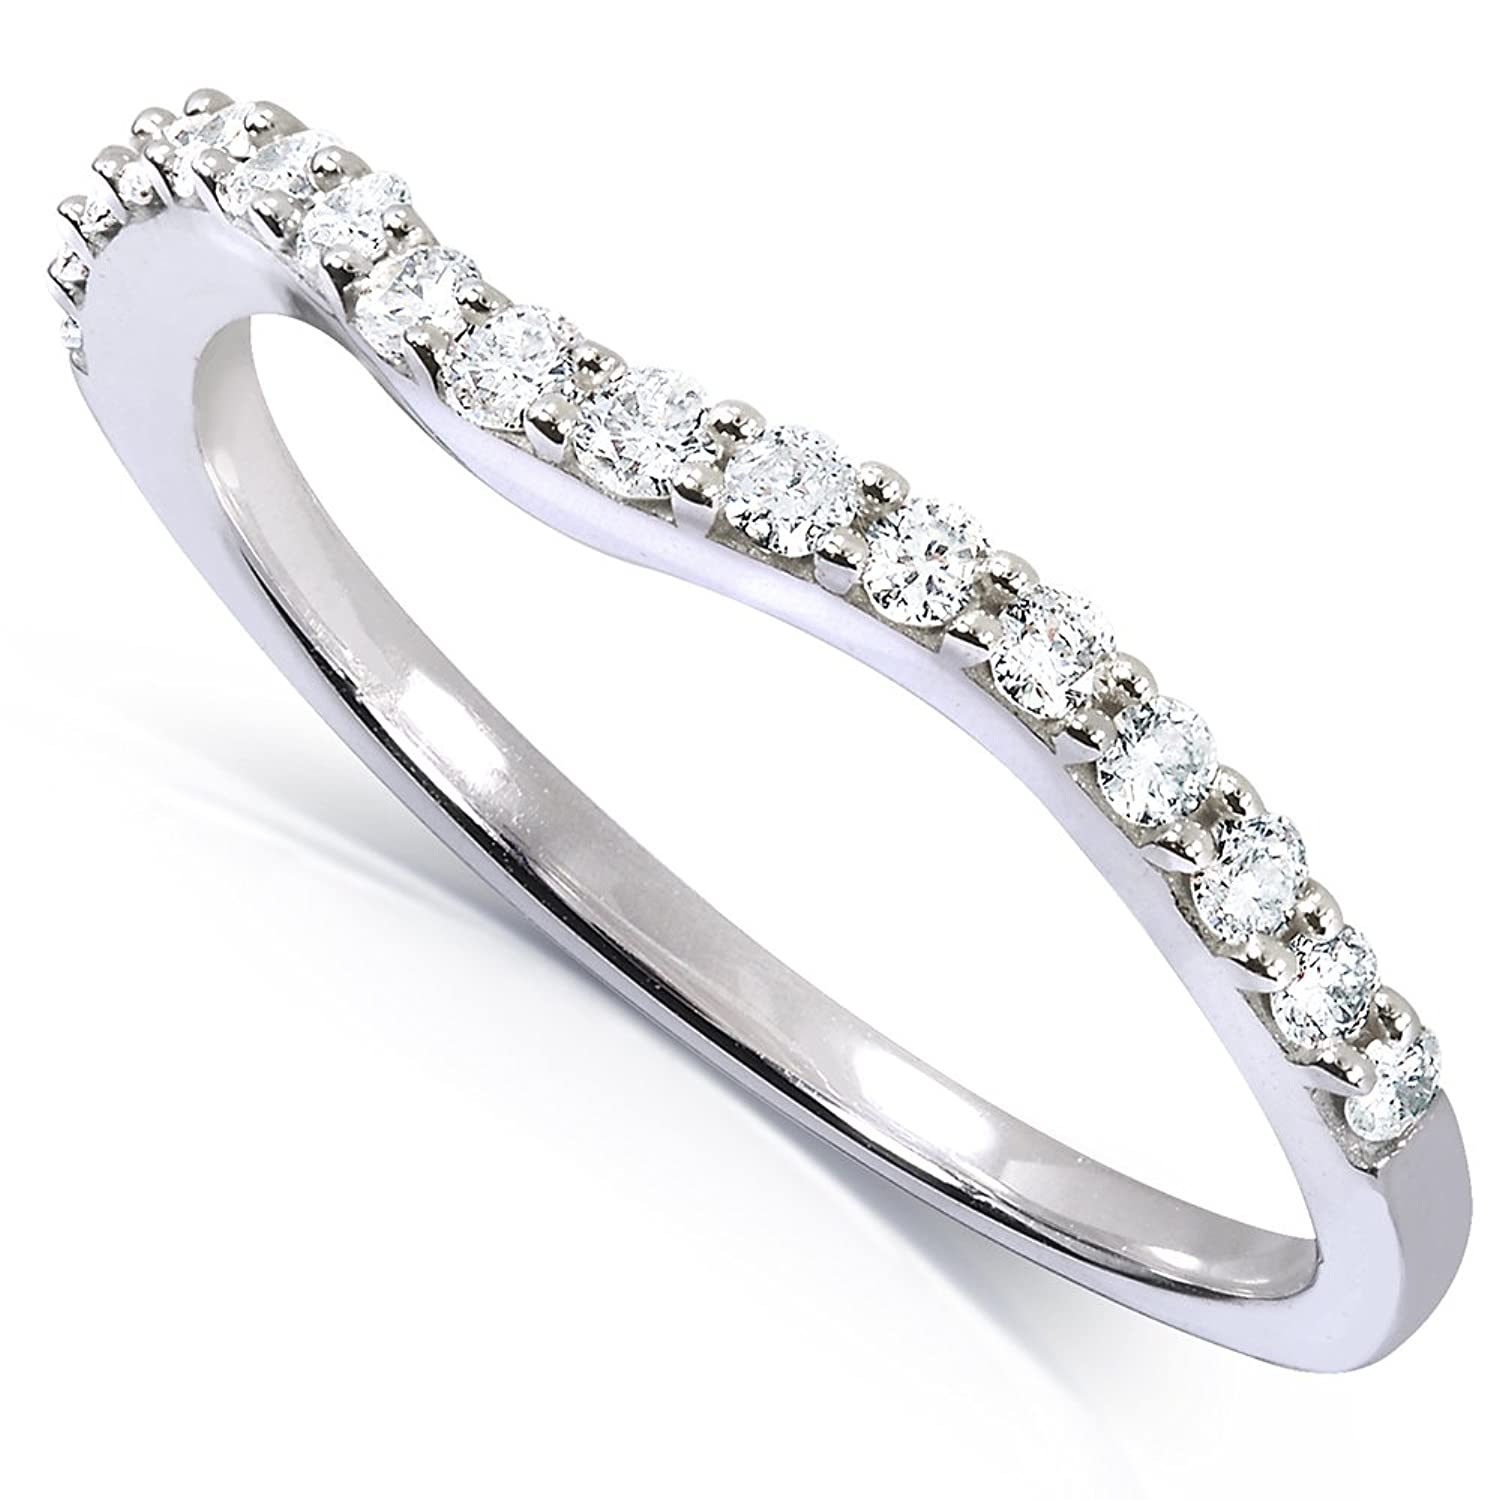 diana eternity around bands products vincent diamond wedding contour jewelry band classic all